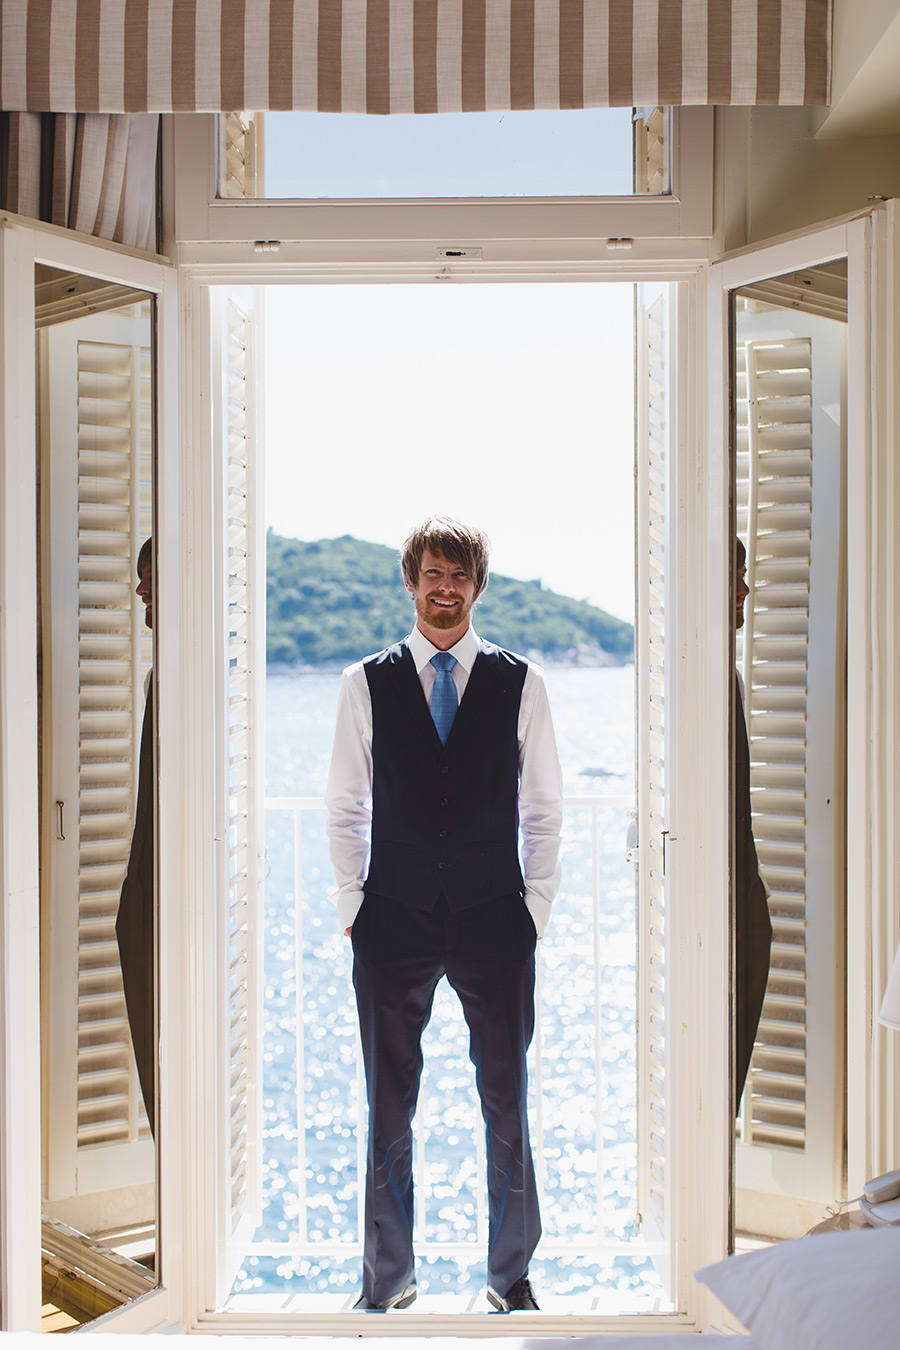 One of a set of images taken at this chic destination Wedding of Jenna & Nick. The stylish old town of Dubrovnik, Croatia.  The Groom stands with the sea in the background.Photography by Matt Porteous